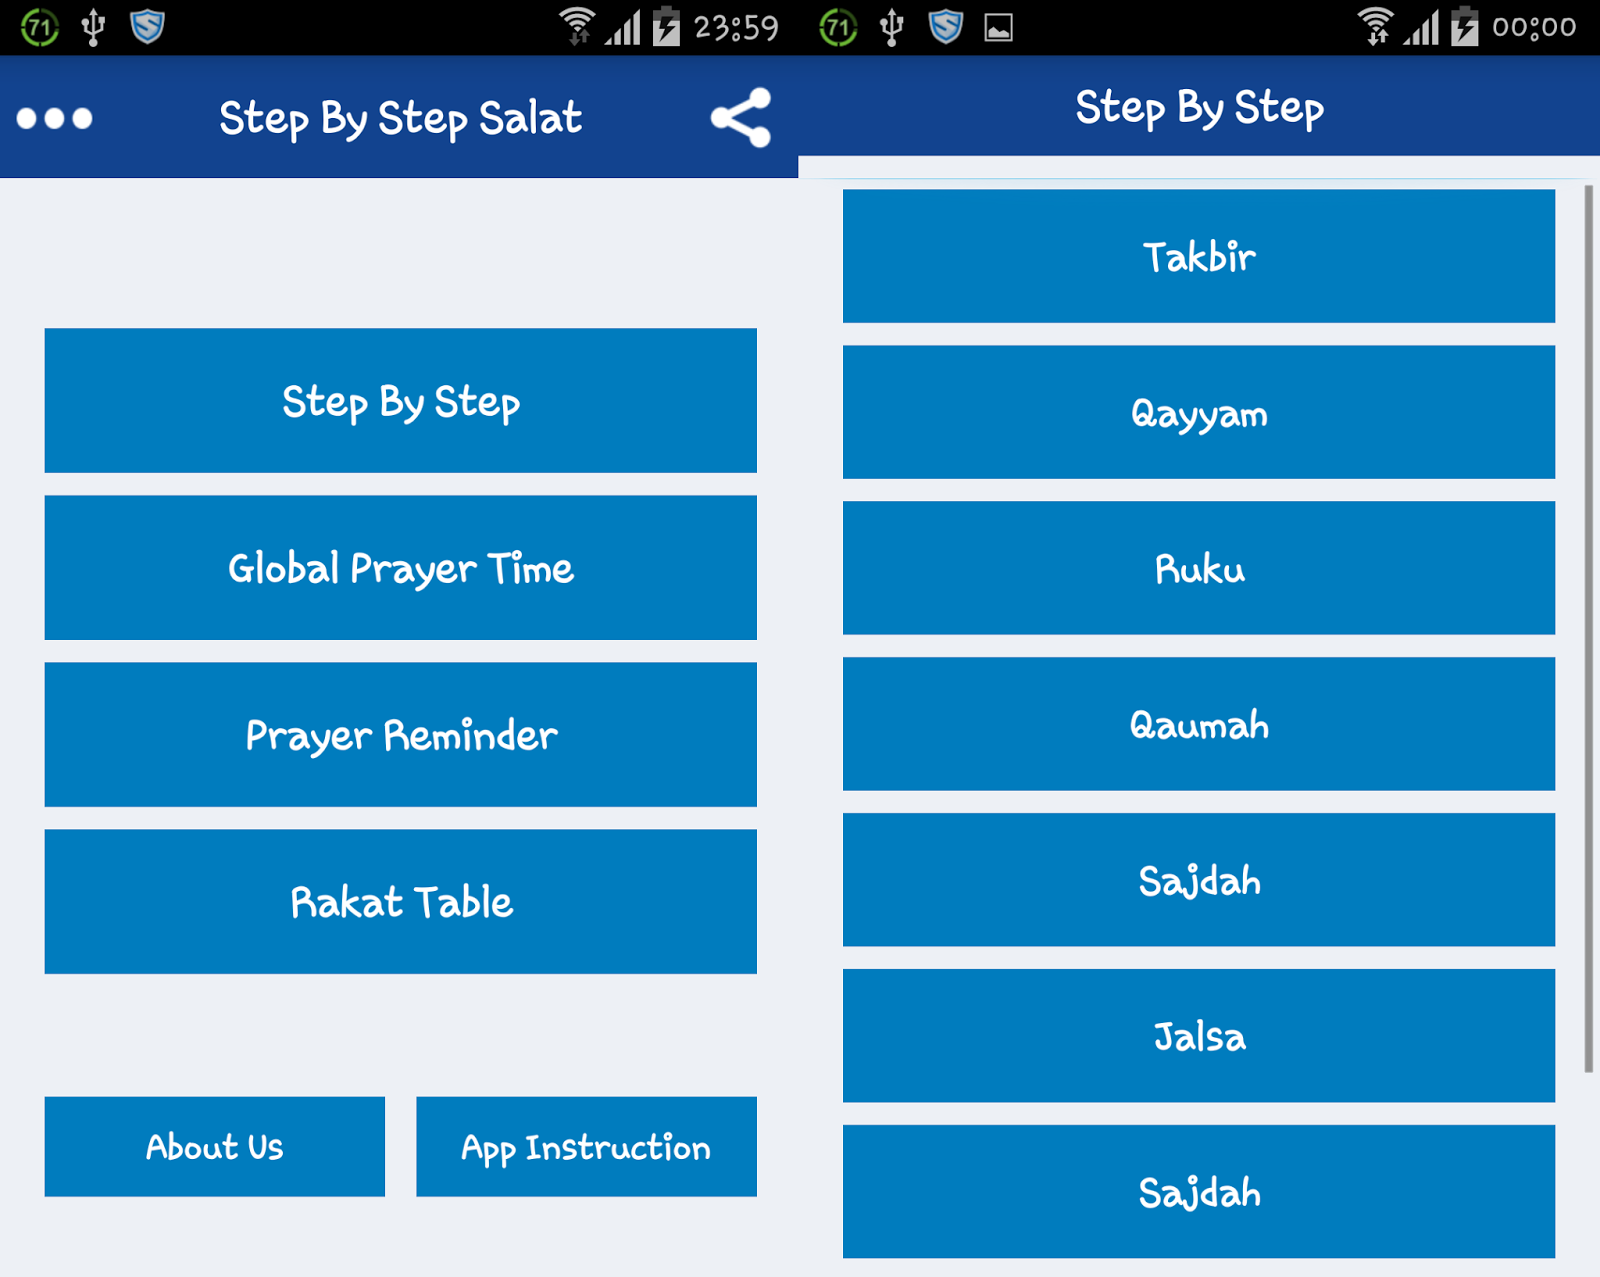 Learn Step by Step Salat(Namaz) Android App - Islamic Book